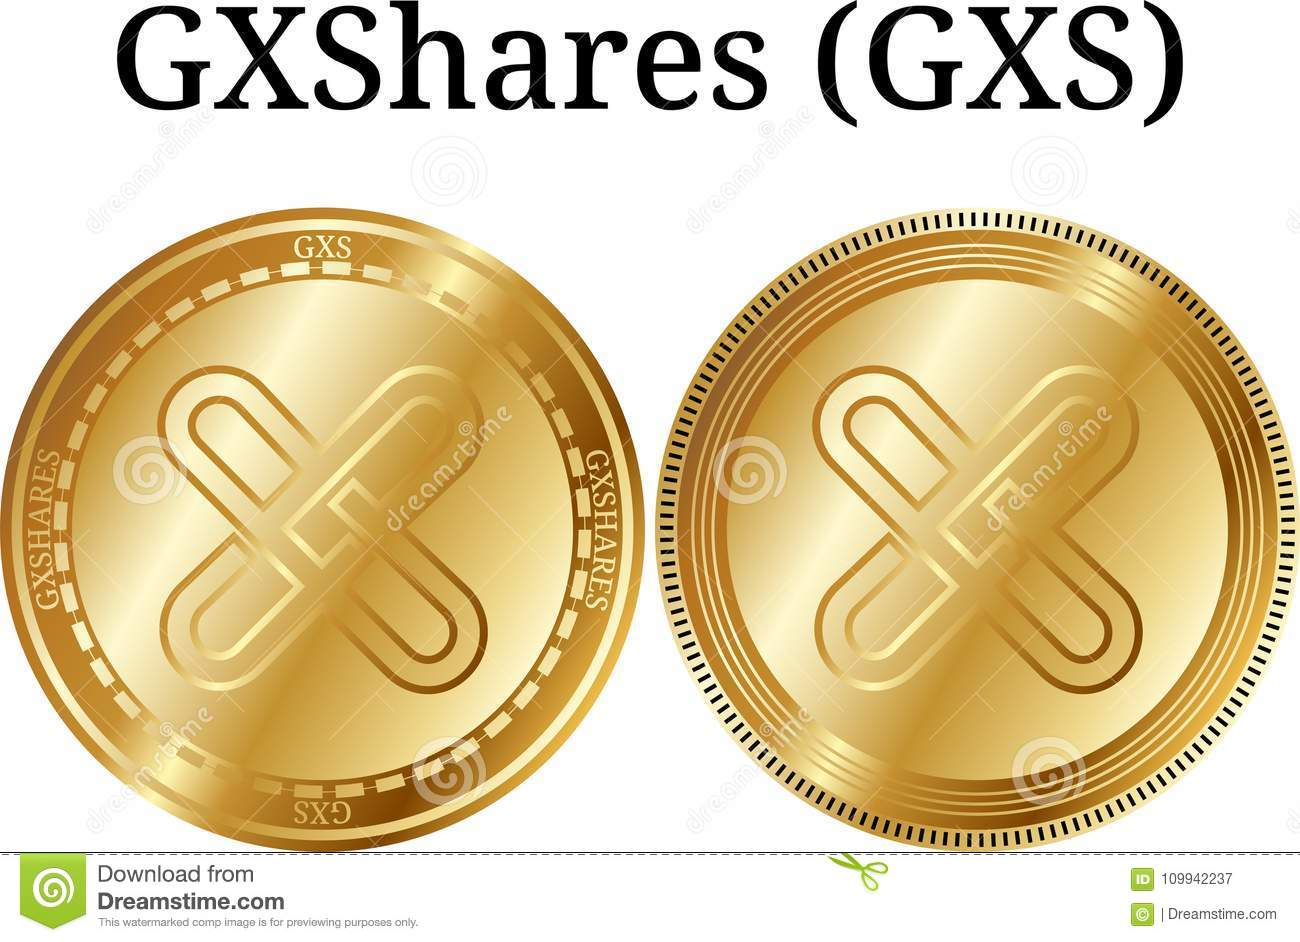 gxs exchange cryptocurrency